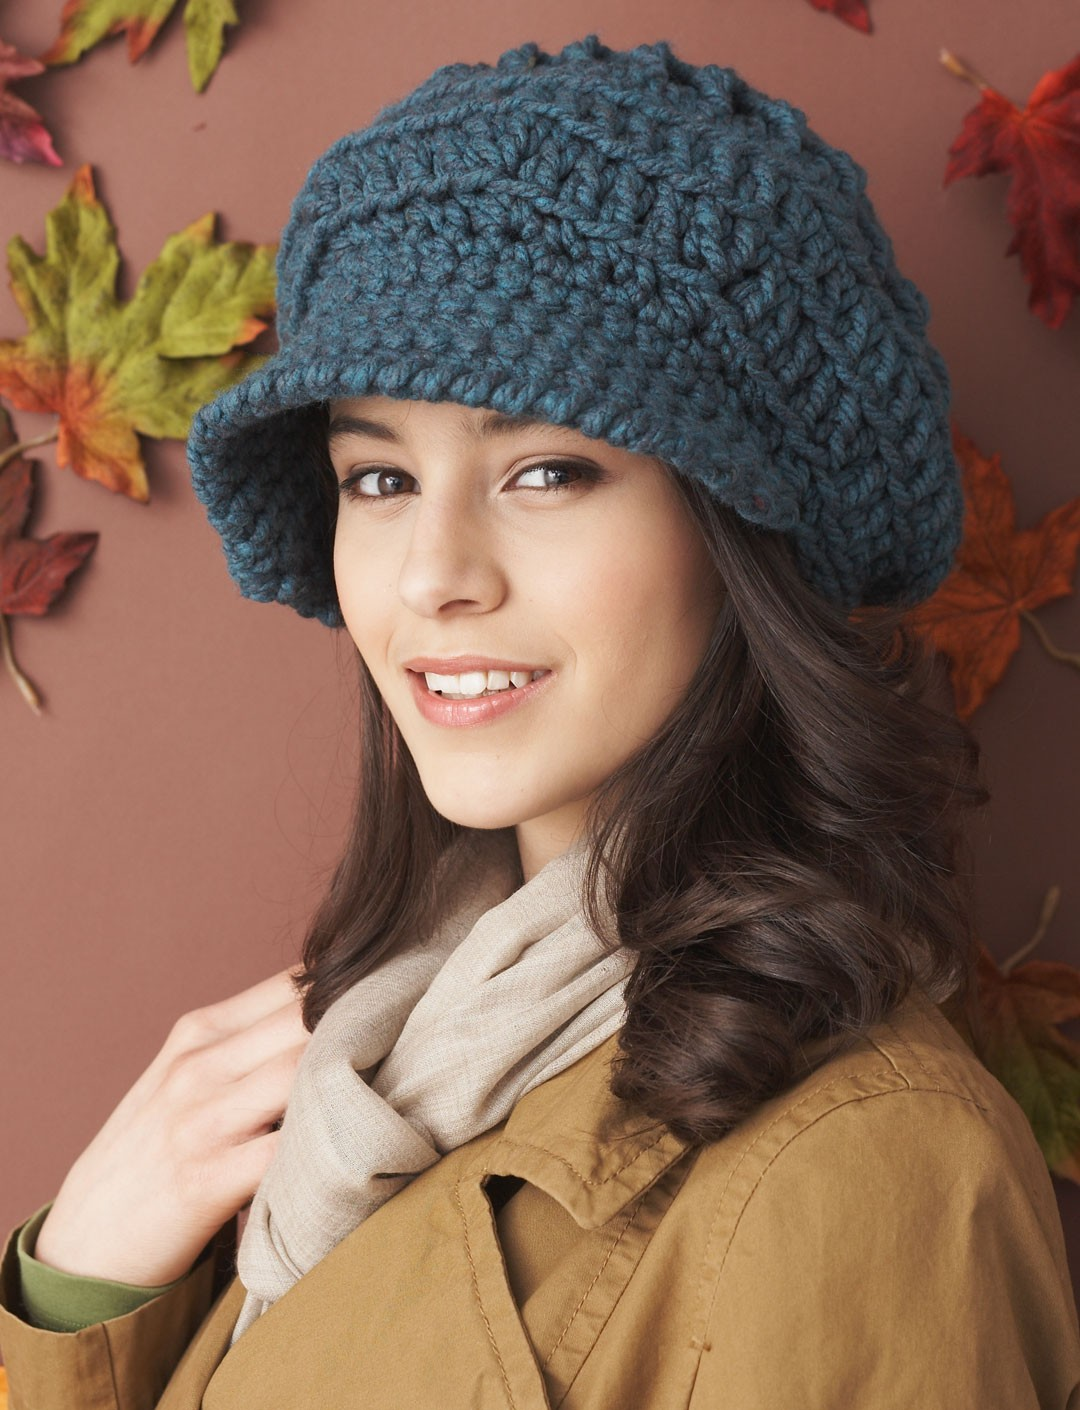 Free Crochet Pattern For Ladies Beanie Hat : Bernat Slouchy Peaked Hat, Crochet Pattern Yarnspirations